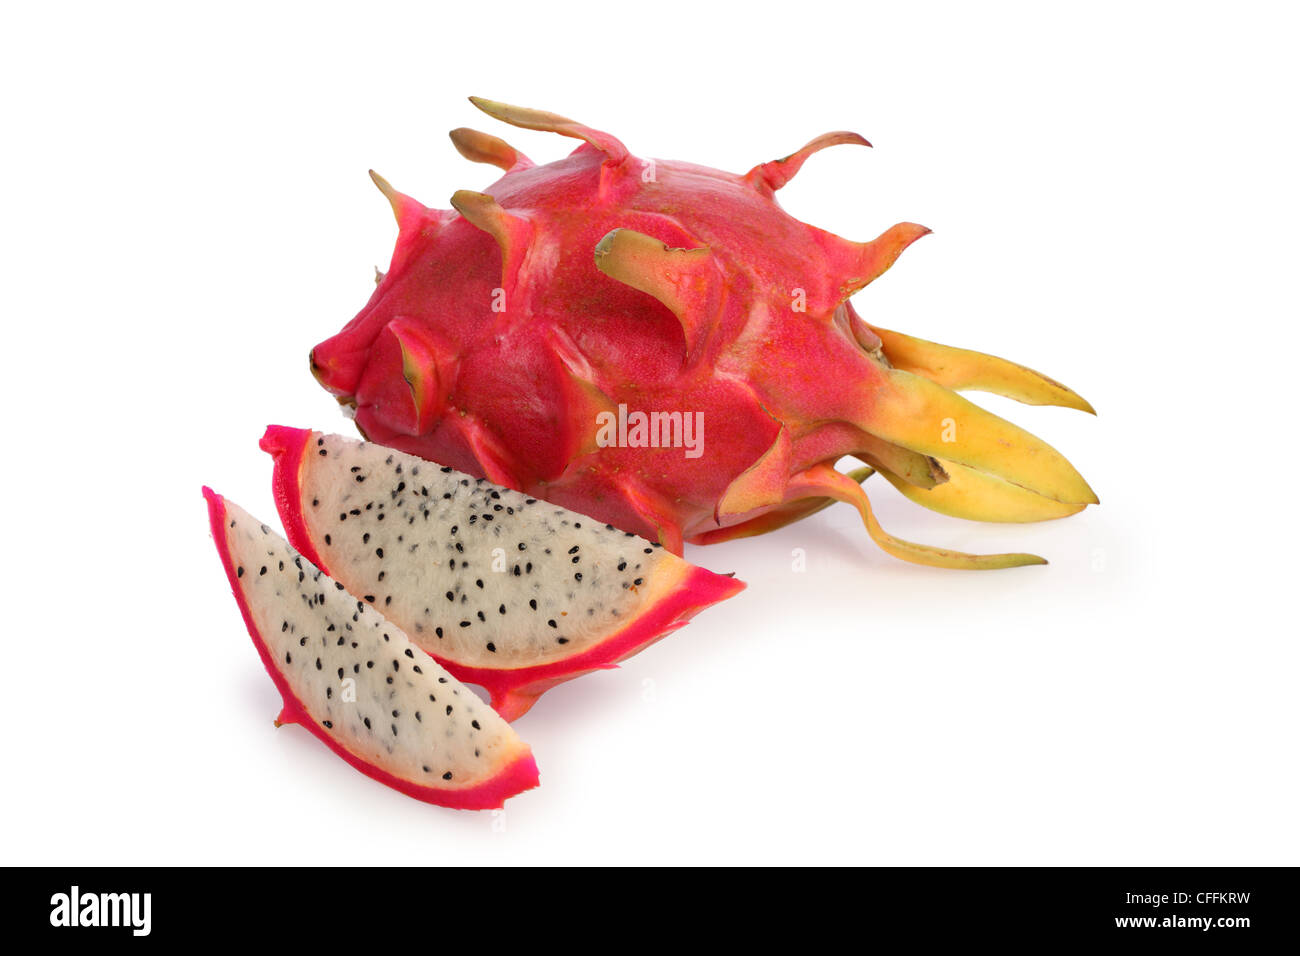 Whole and sliced Dragonfruit cut out on white background - Stock Image